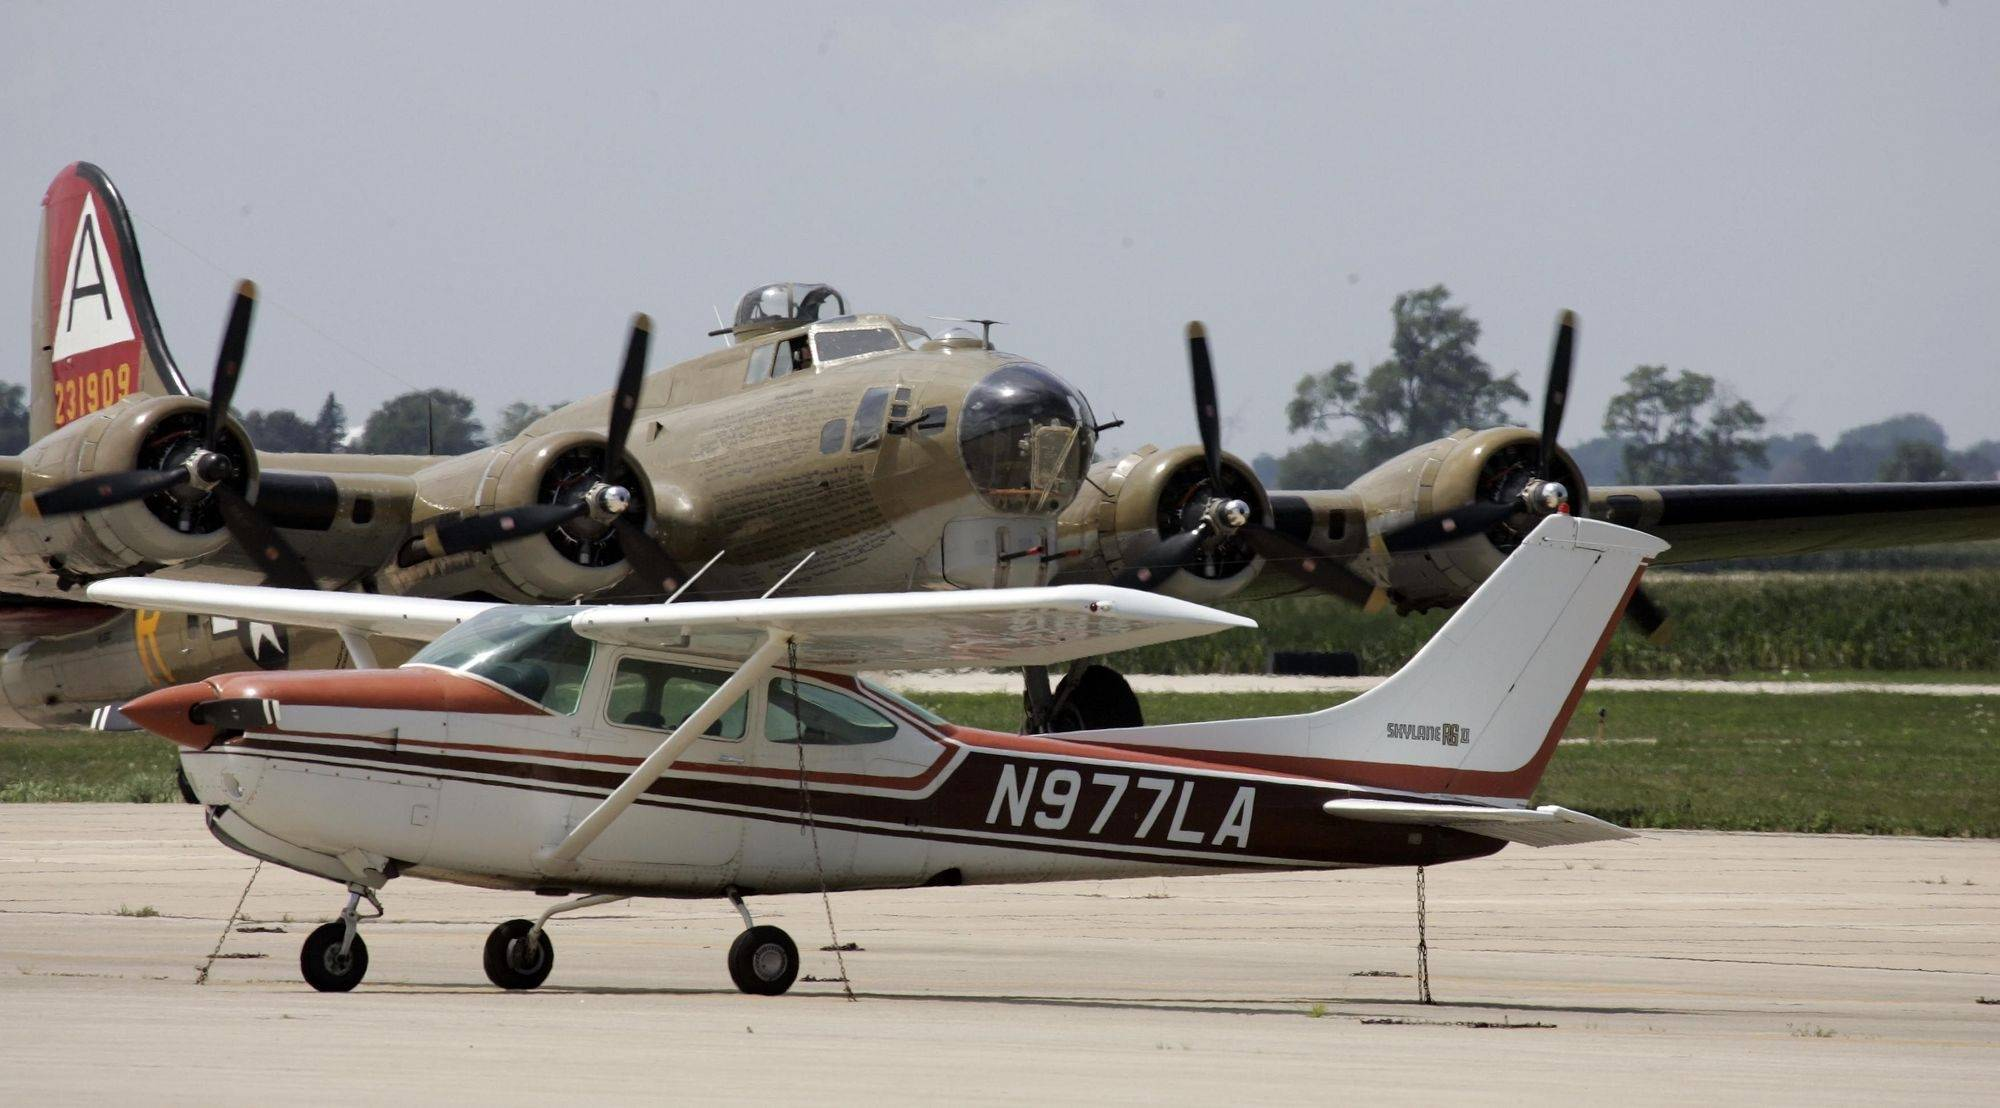 WWII vintage airplanes make a stop in Aurora